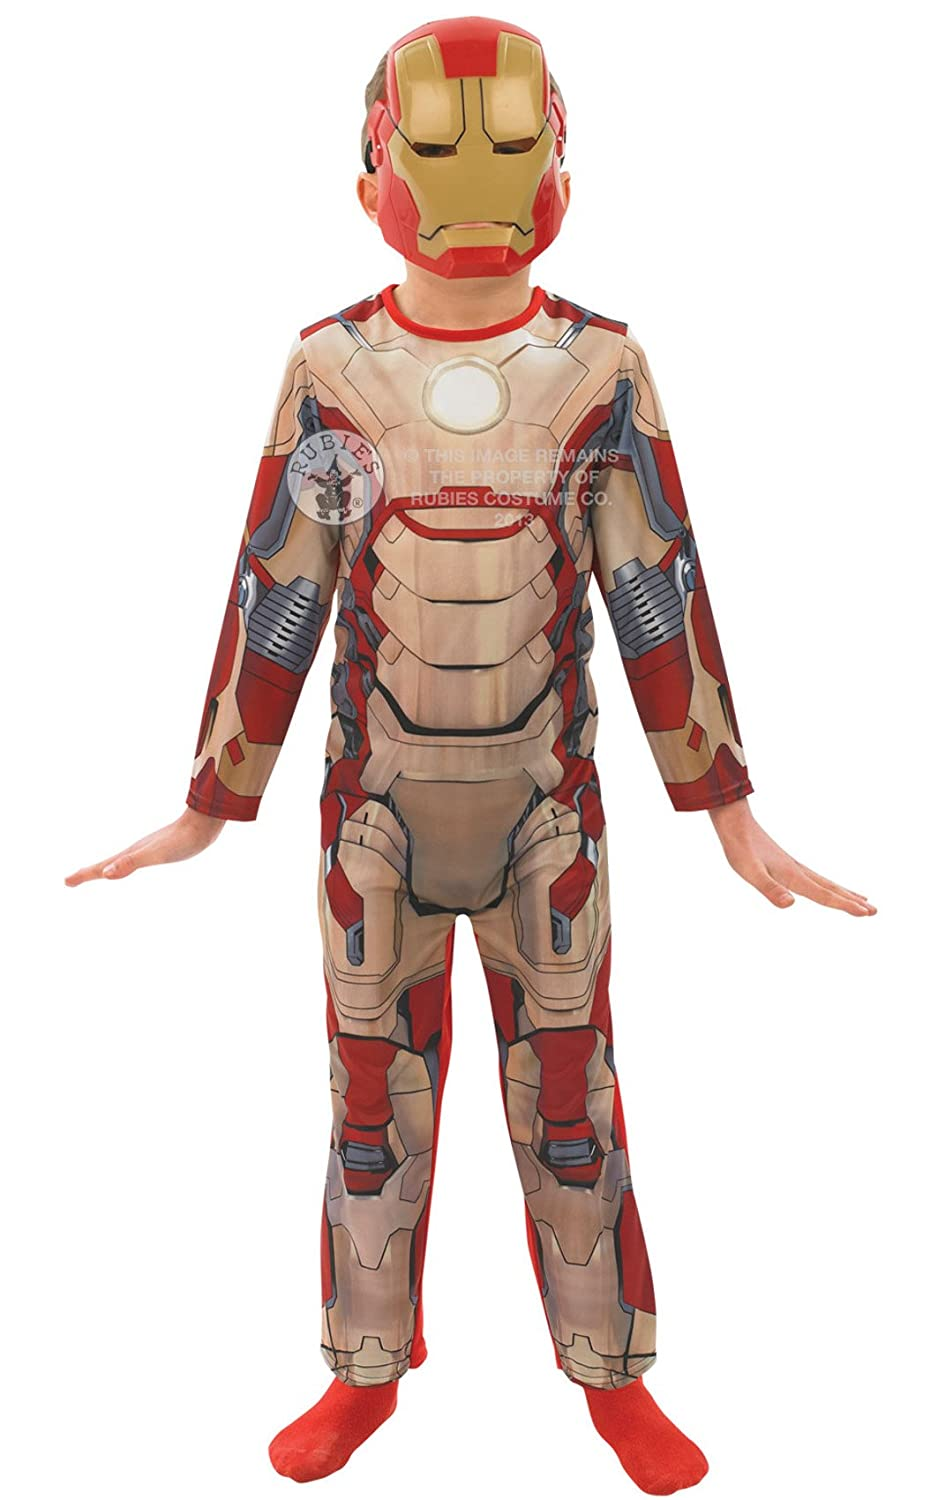 Iron Man 3 Dress Up Outfit - 3 - 4 Years : Amazon co uk: Toys & Games